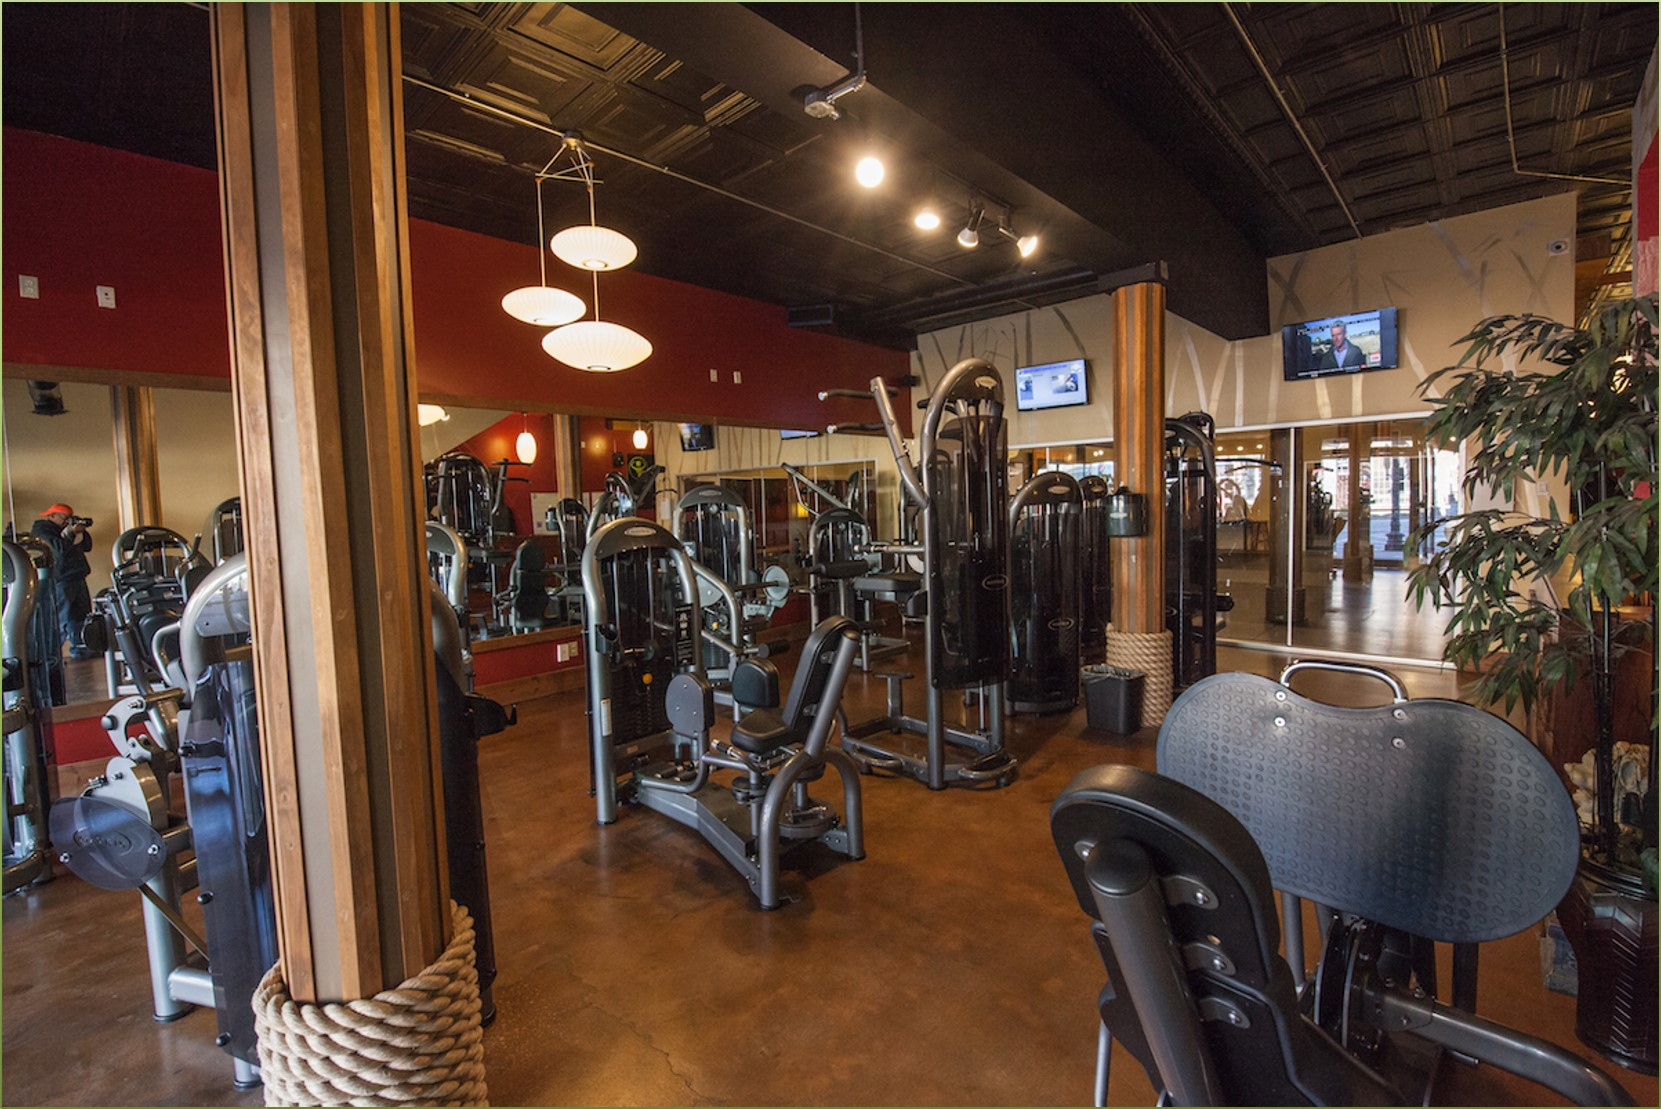 Gym with equipment and tvs